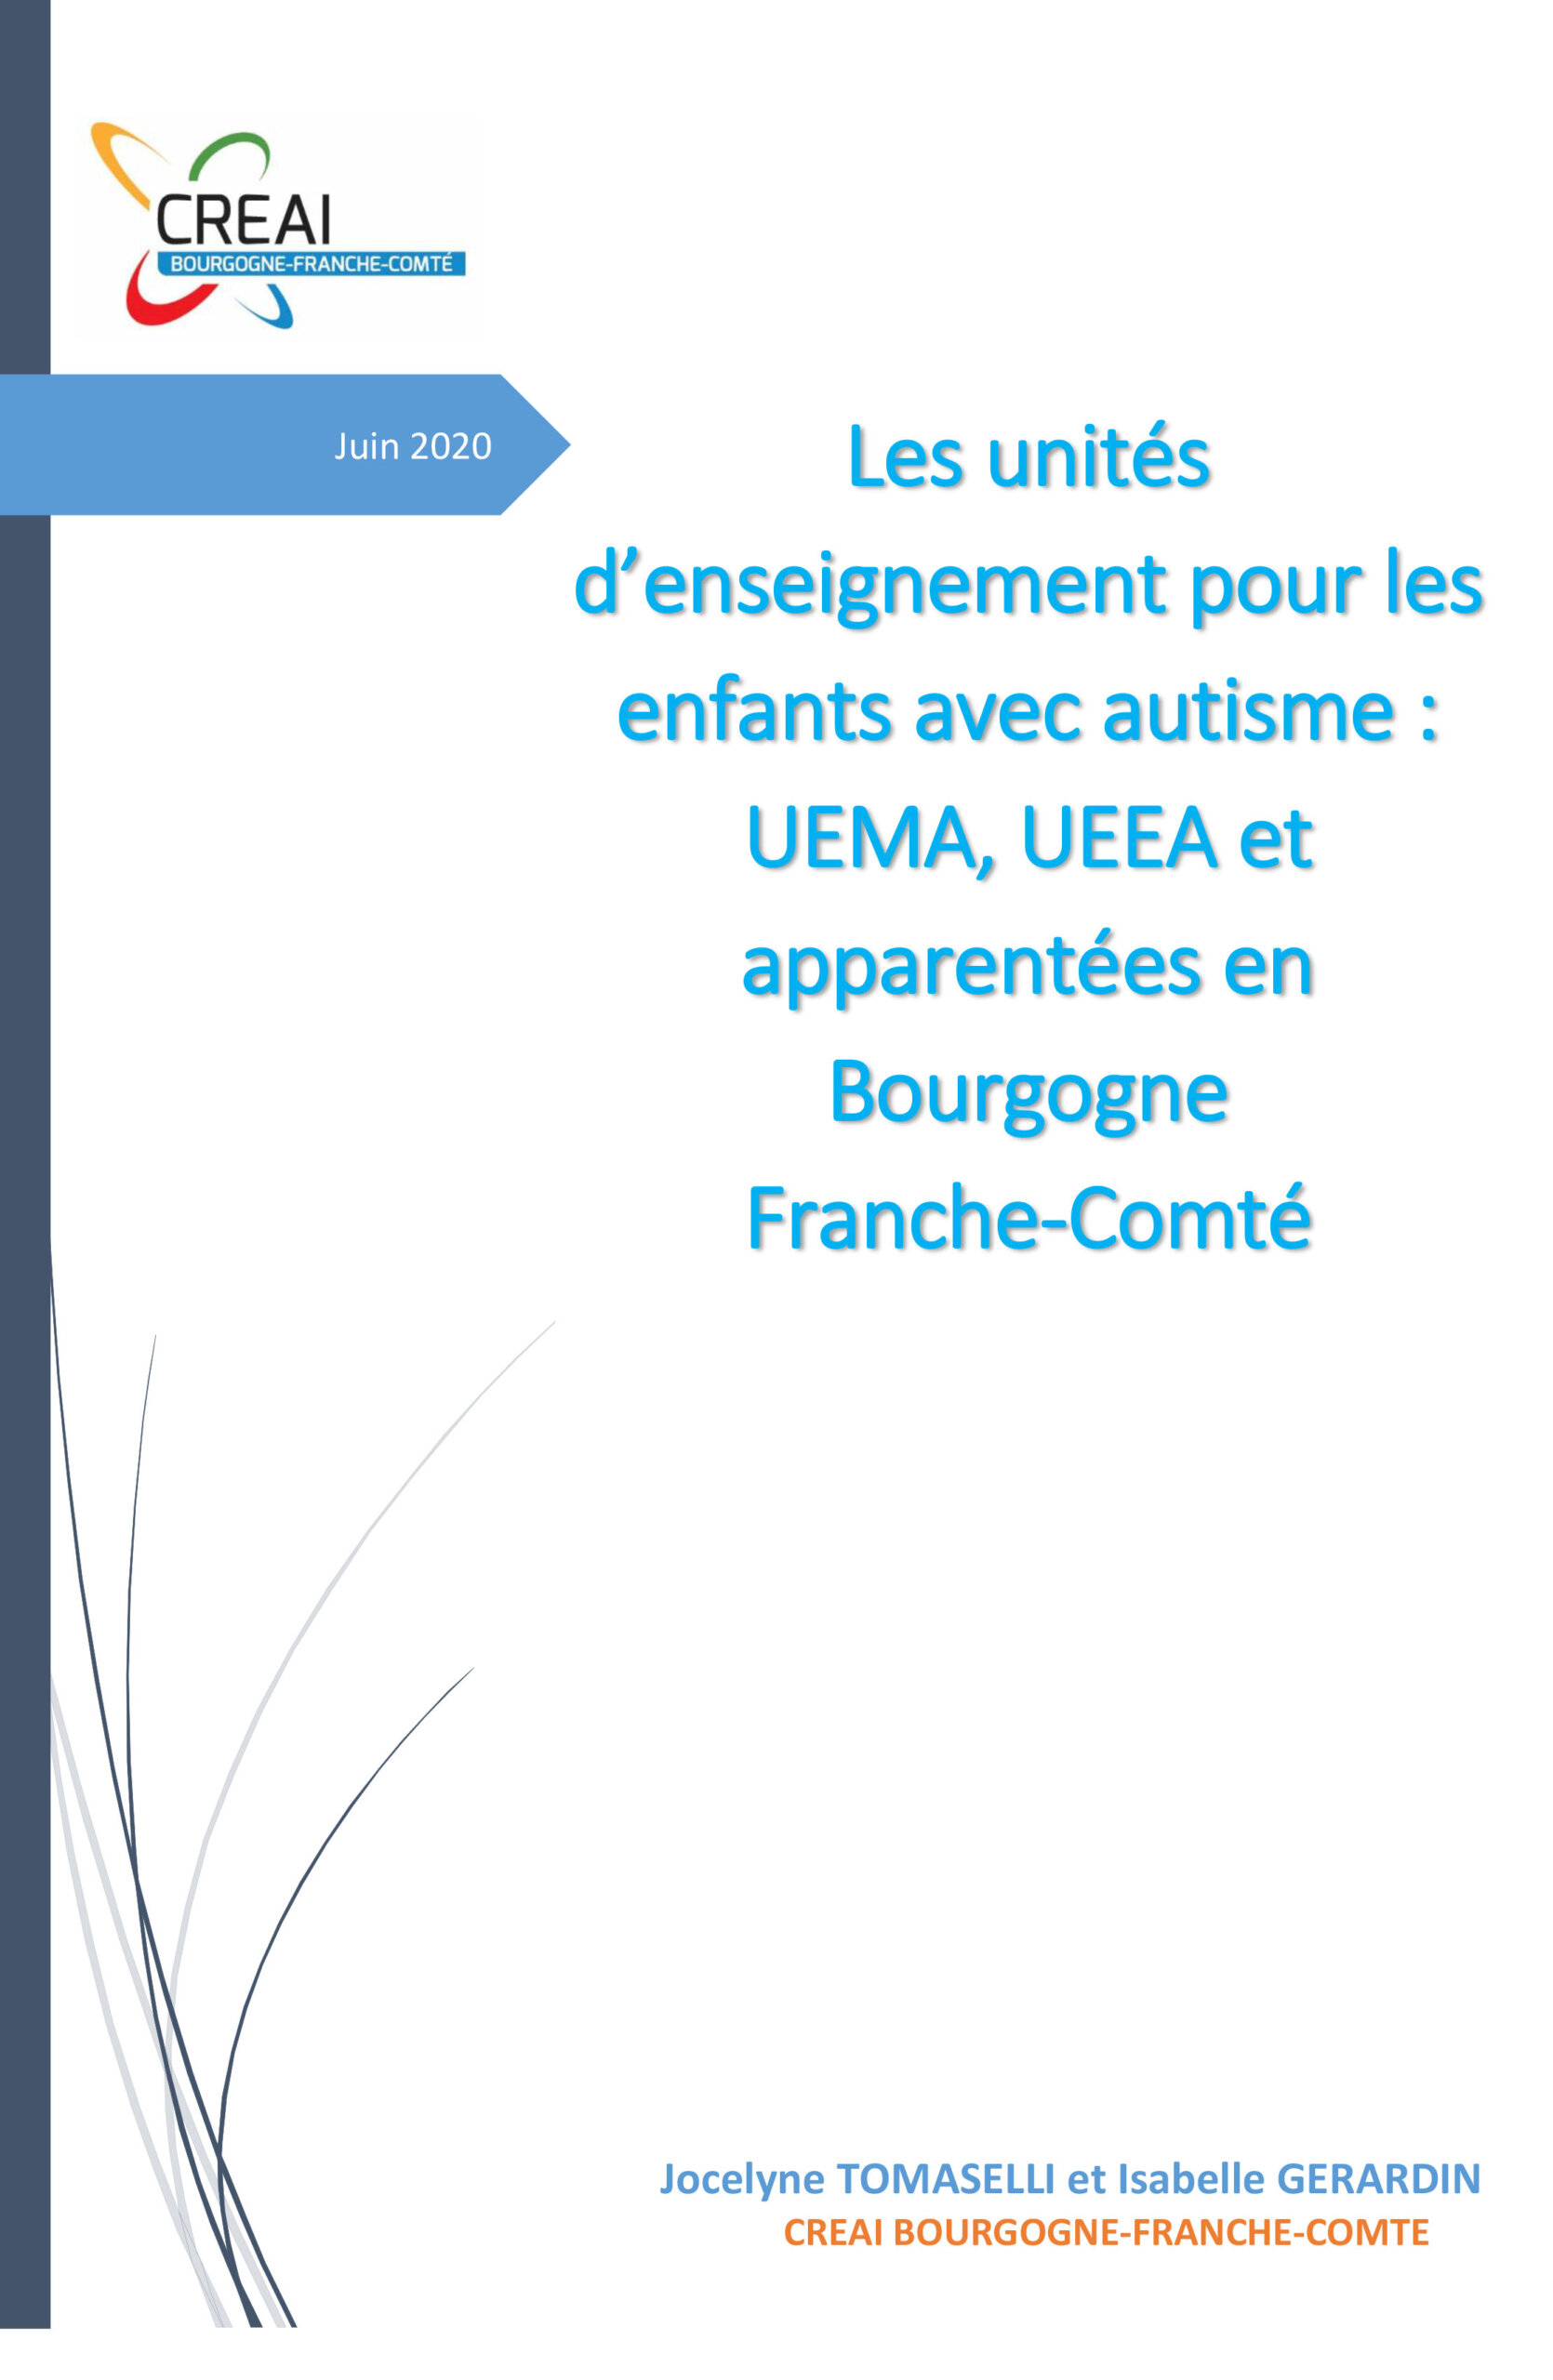 version finale du rapport UEMA UEEA et apparentees en BFC cover scaled - Accueil